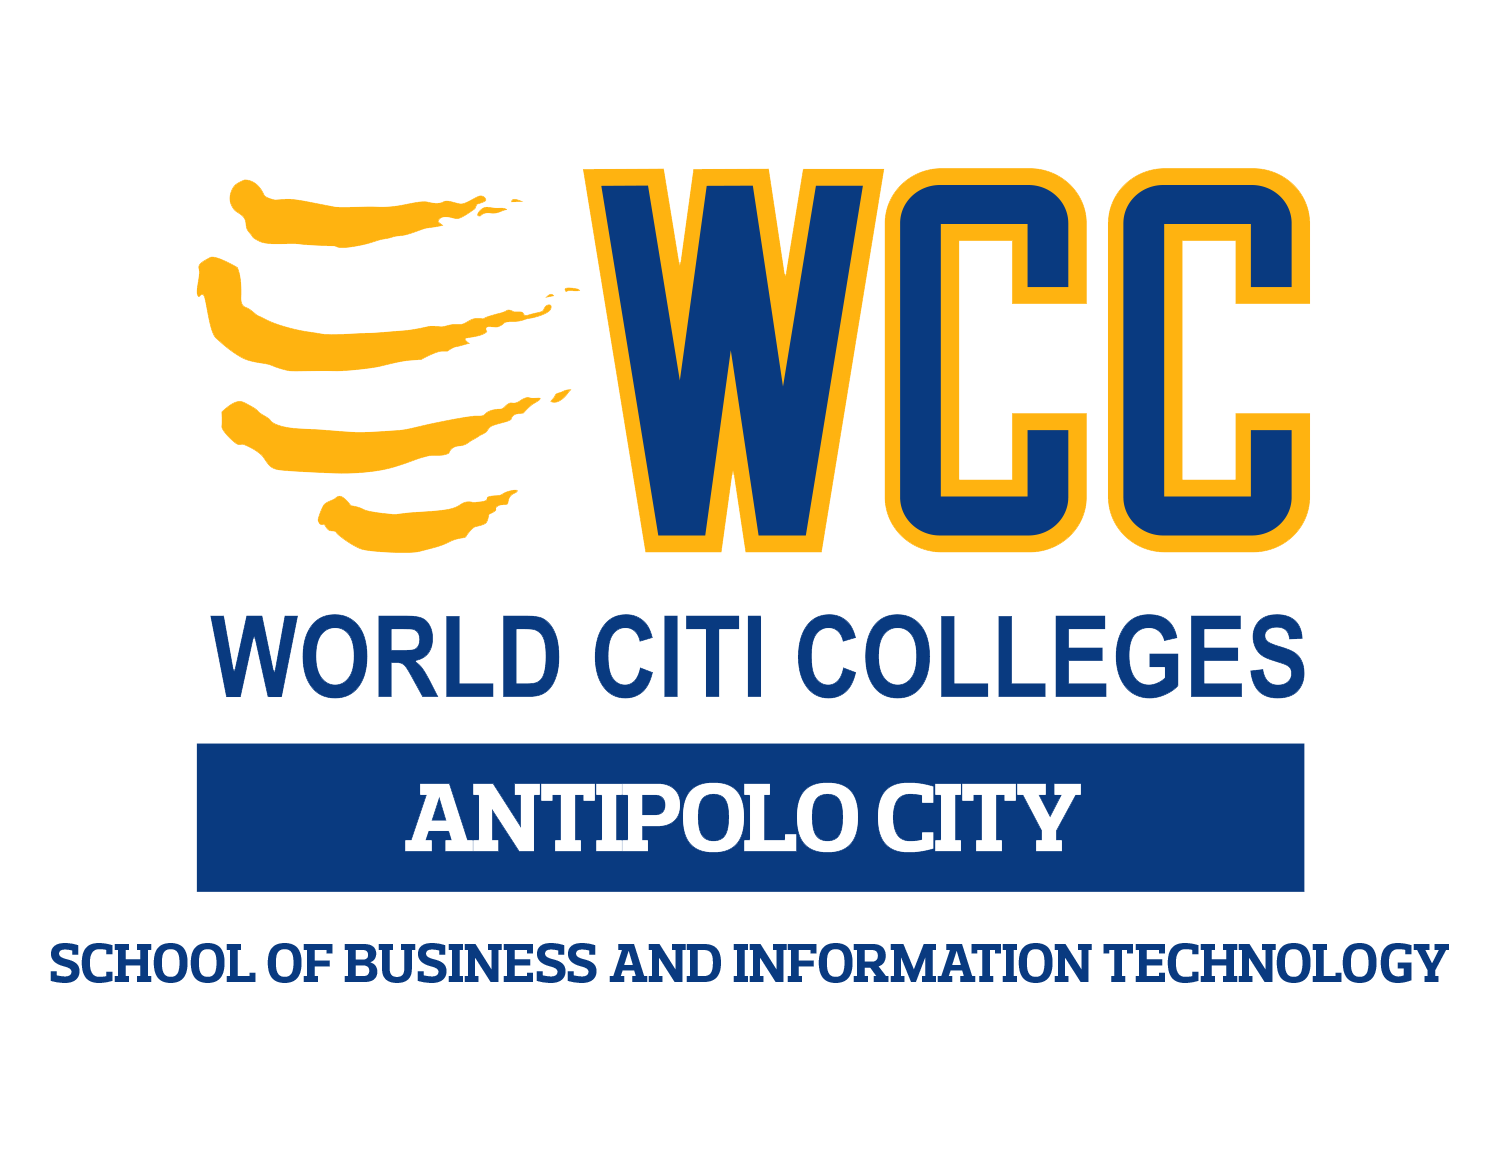 World Citi Colleges - Antipolo Logo